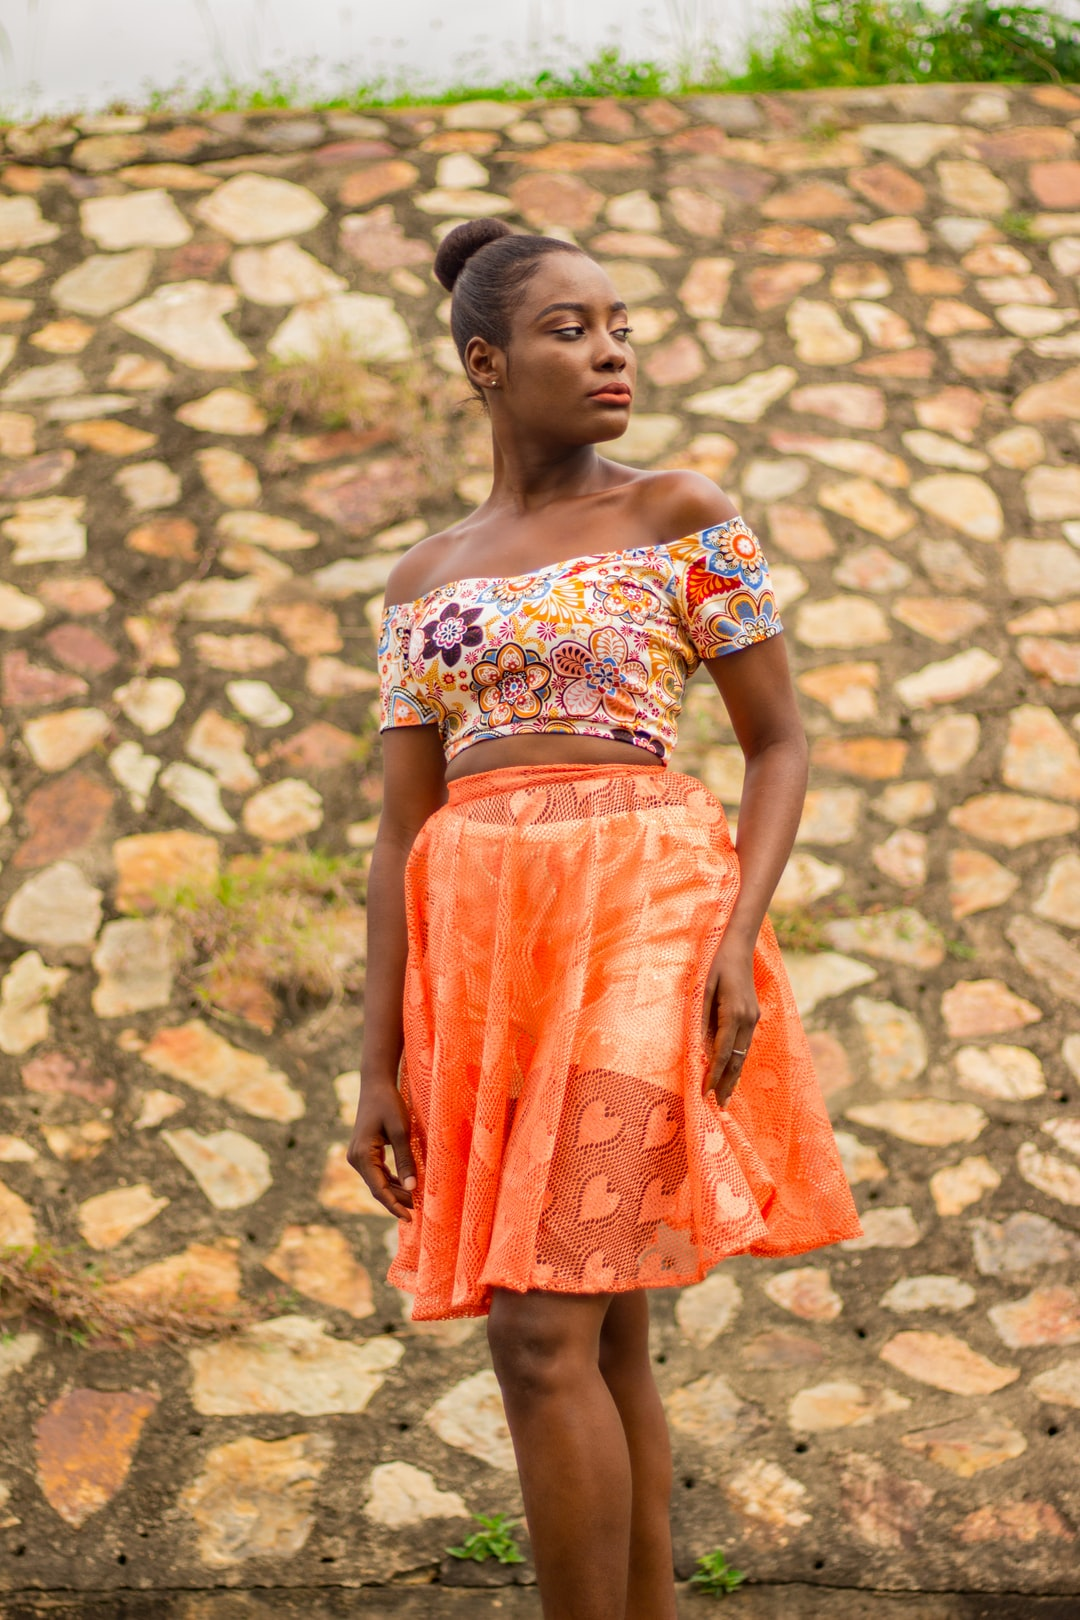 The Important Guidelines That Should Lead You When Shopping for African Inspired Clothing